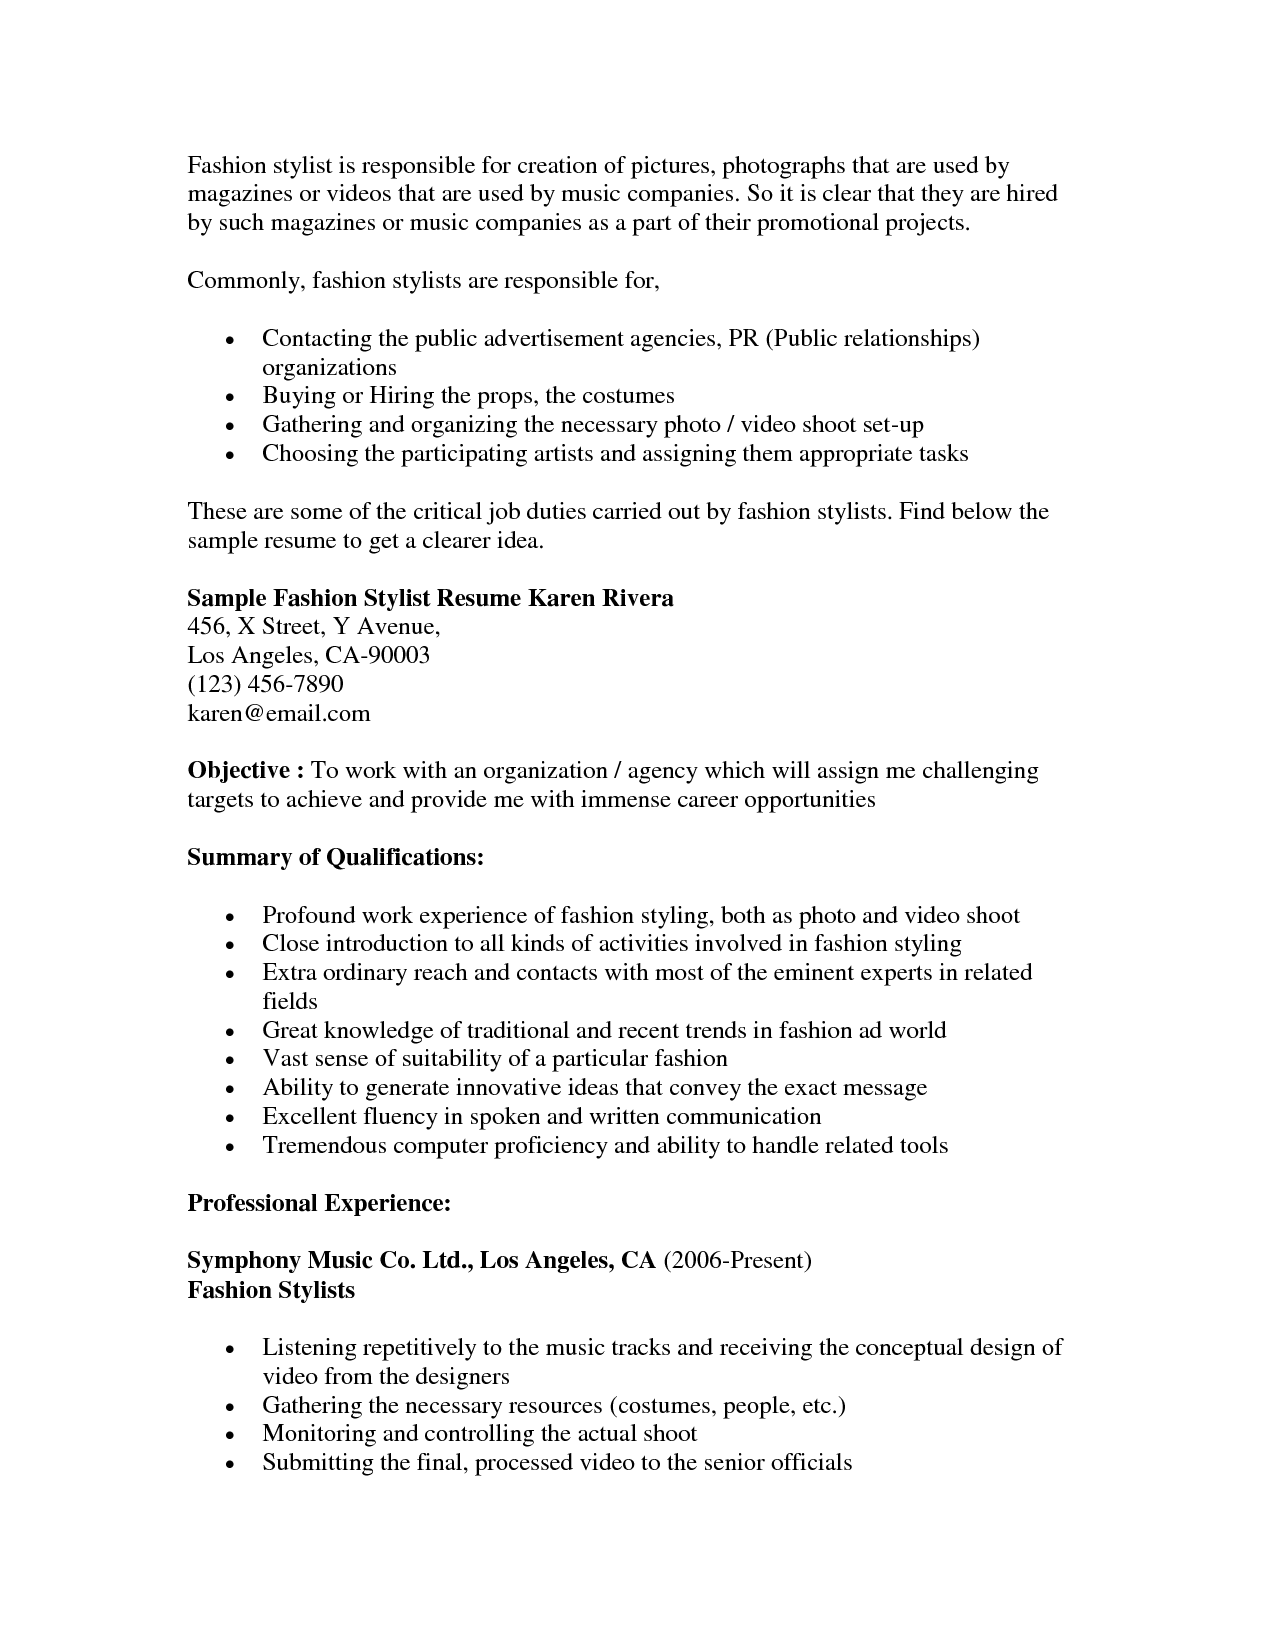 Hair Stylist Job Description - resume-resource.com